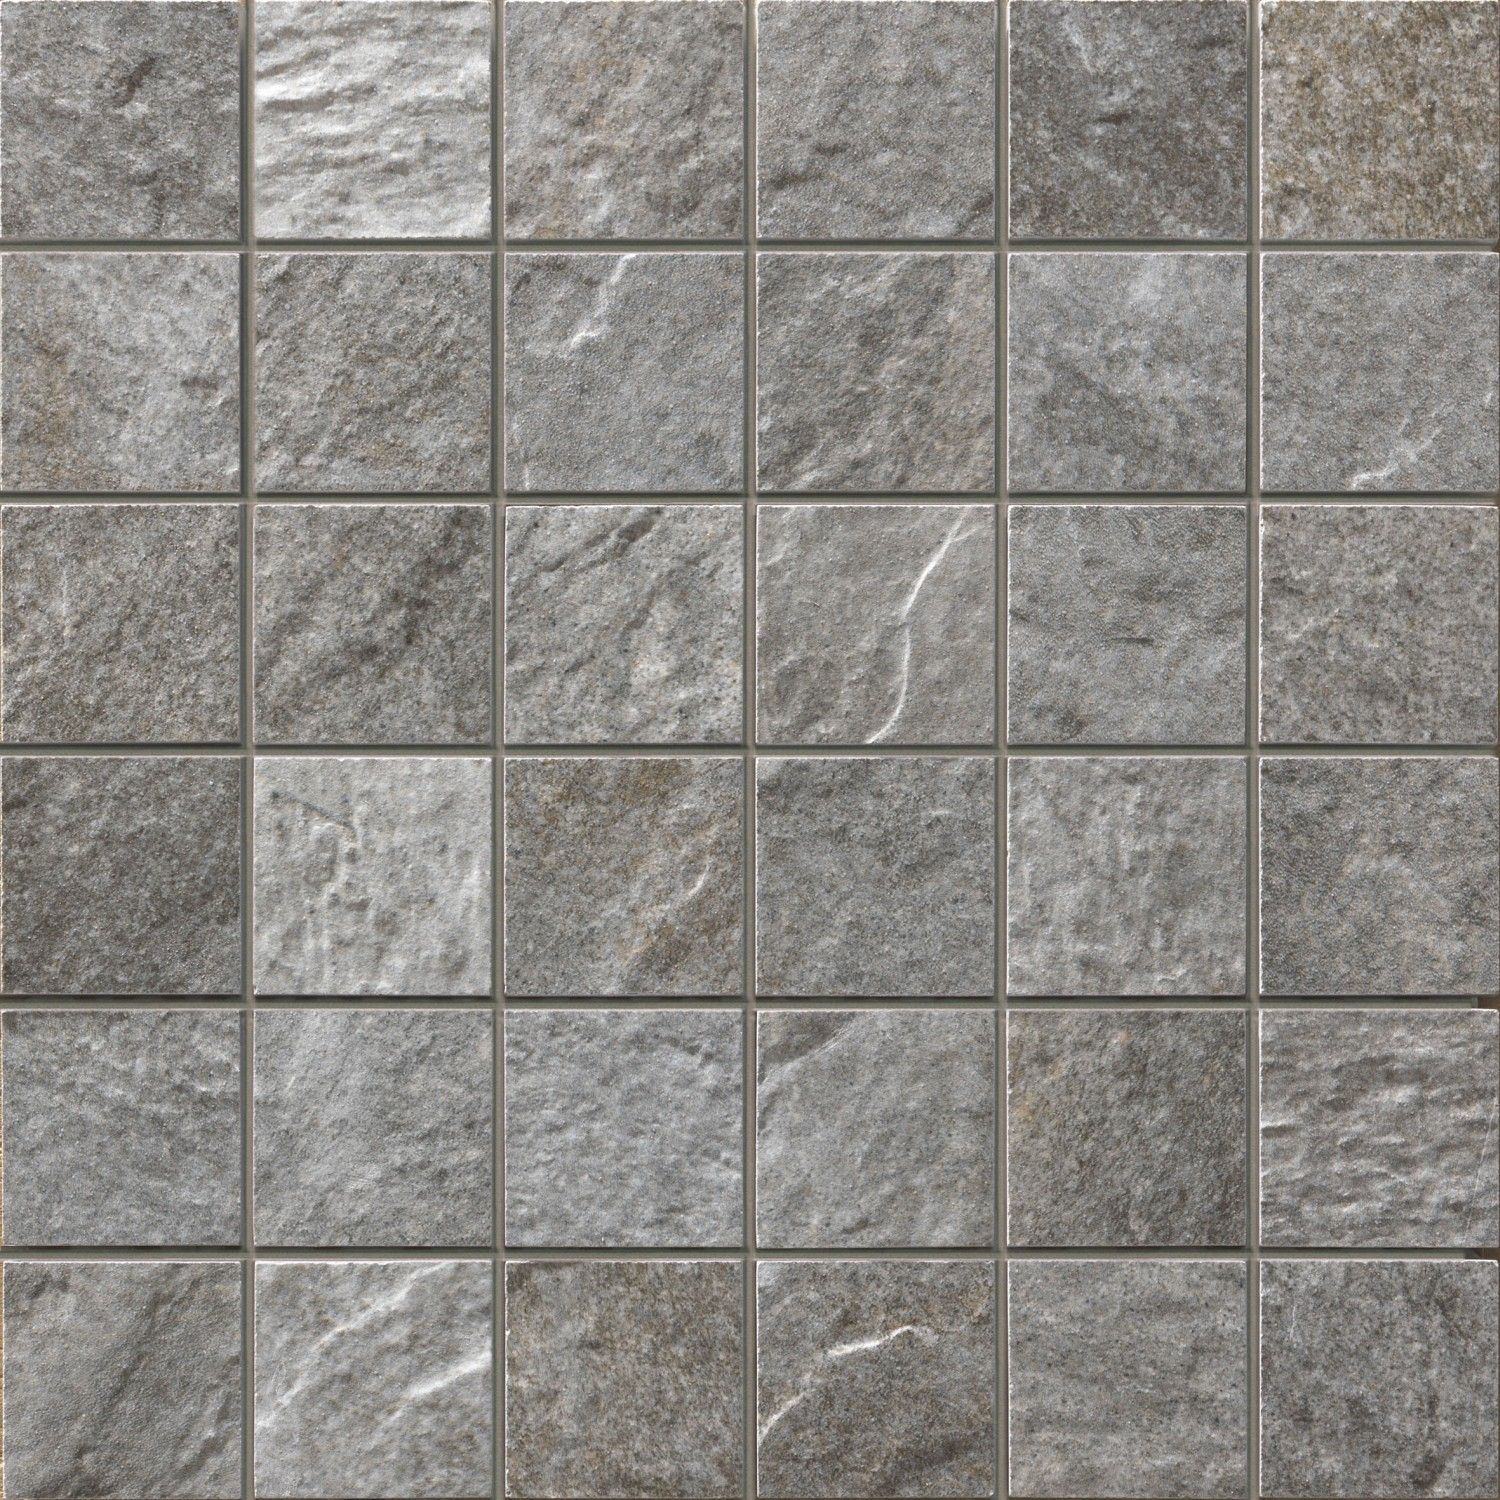 Textured tiles for bathroom floor bathroom exclusiv for Flooring tiles for bathroom